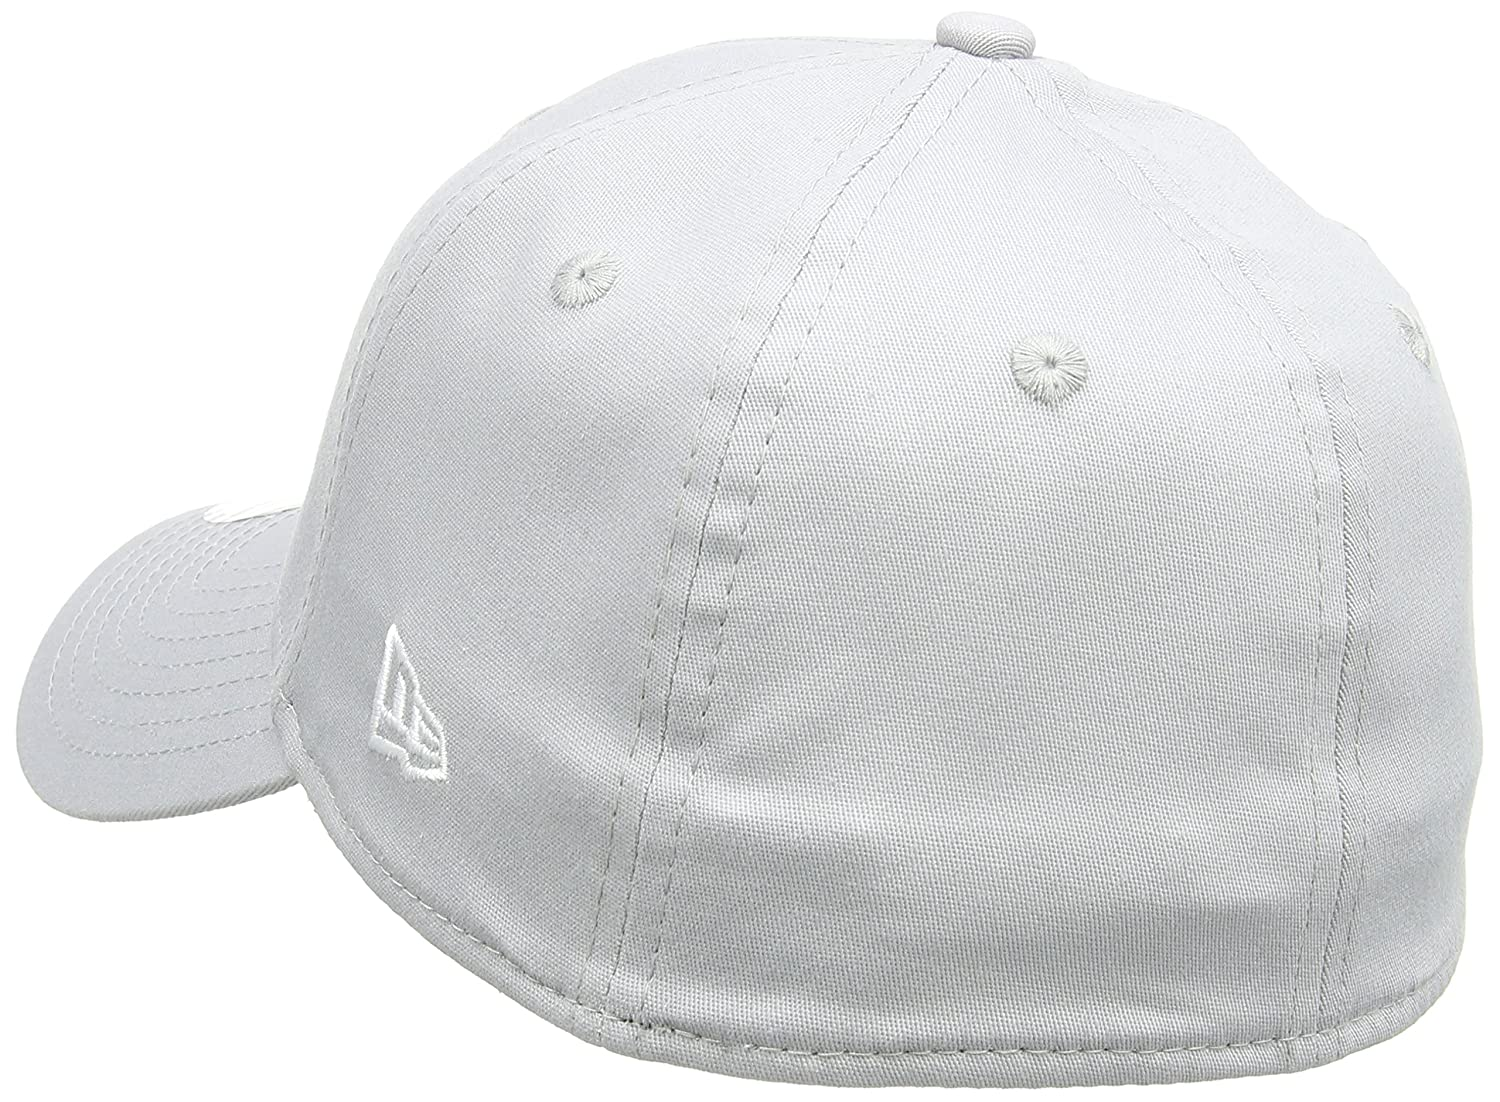 9d83210300f ... germany new era mens mlb basic ny yankees 39thirty stretch back  baseball cap 10145636 52817 a97e5